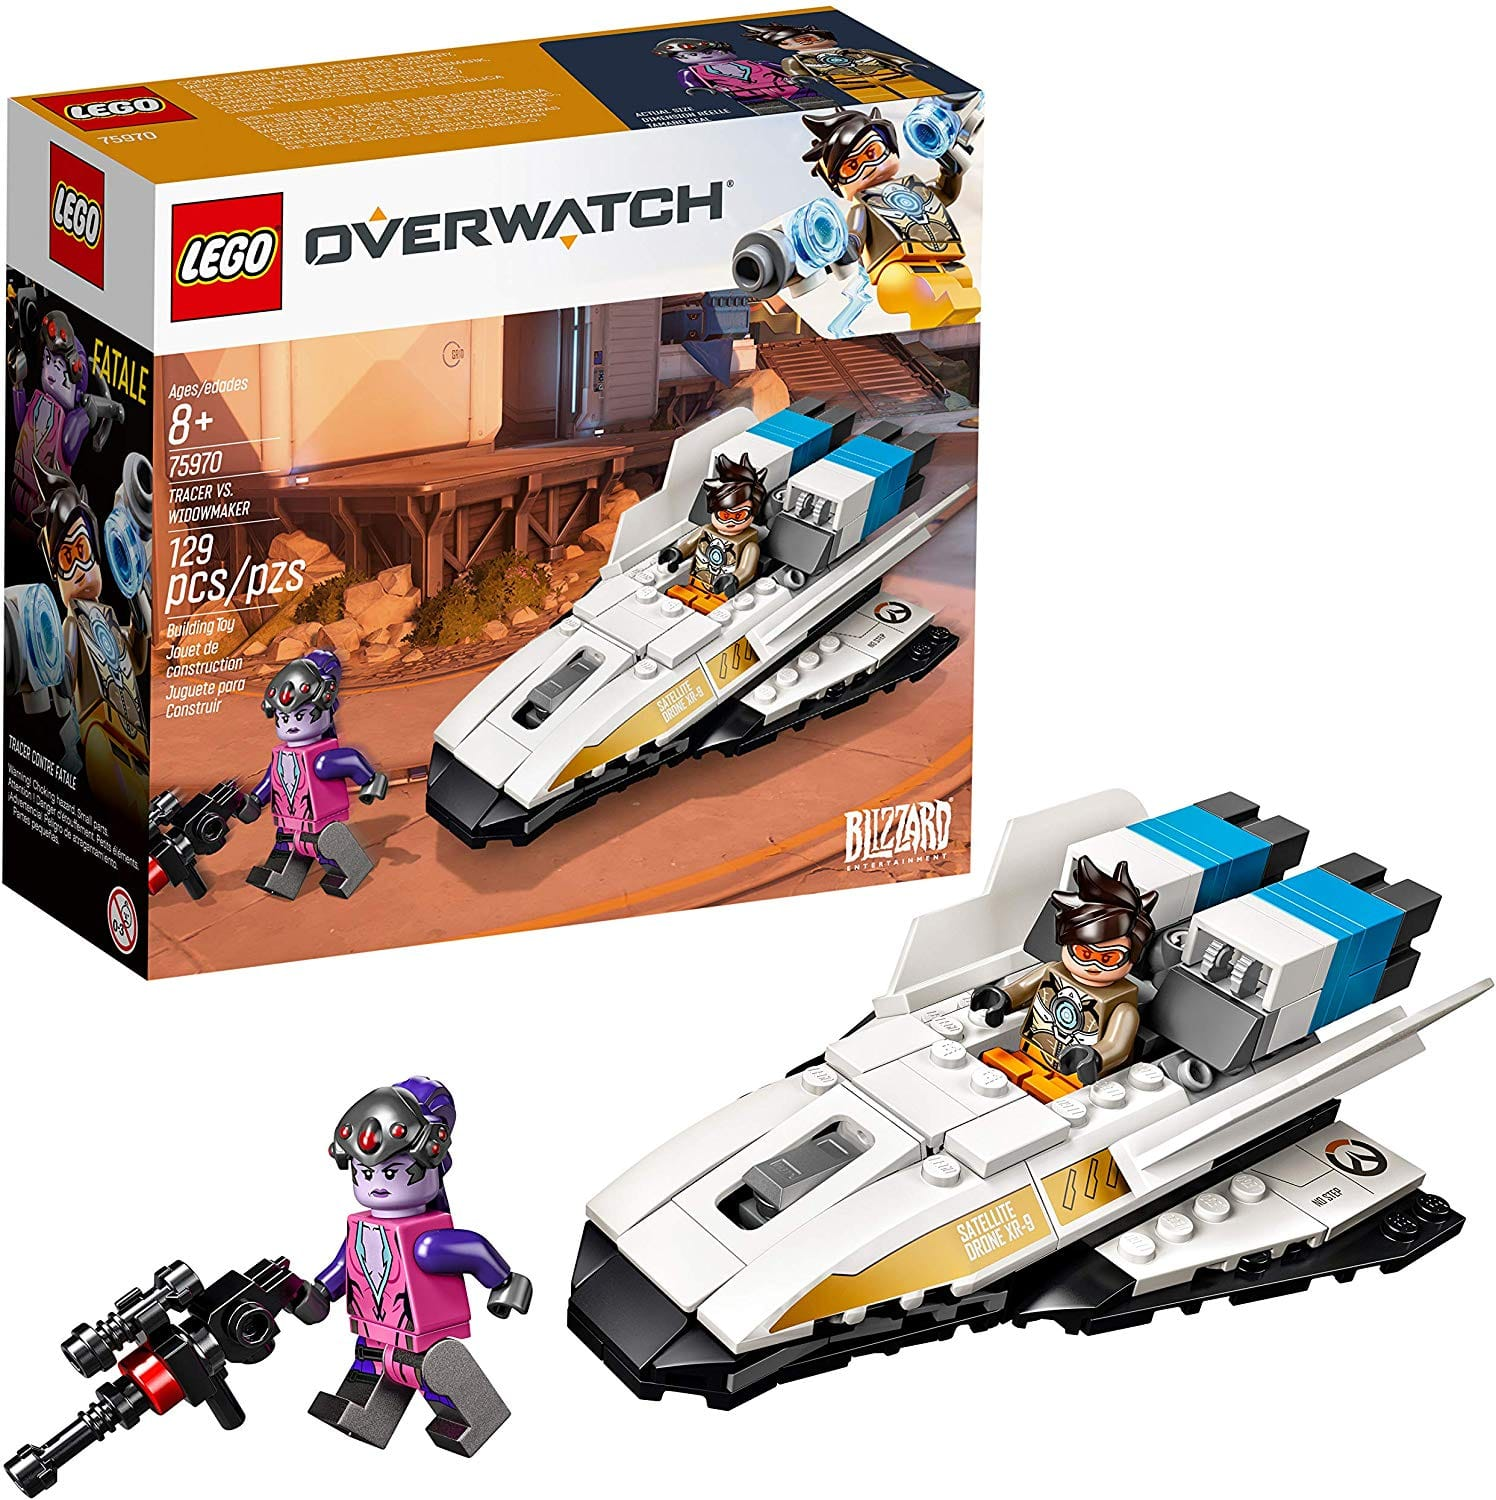 LEGO Overwatch Tracer & Widowmaker Building Kit (75970) for $8.99 & More